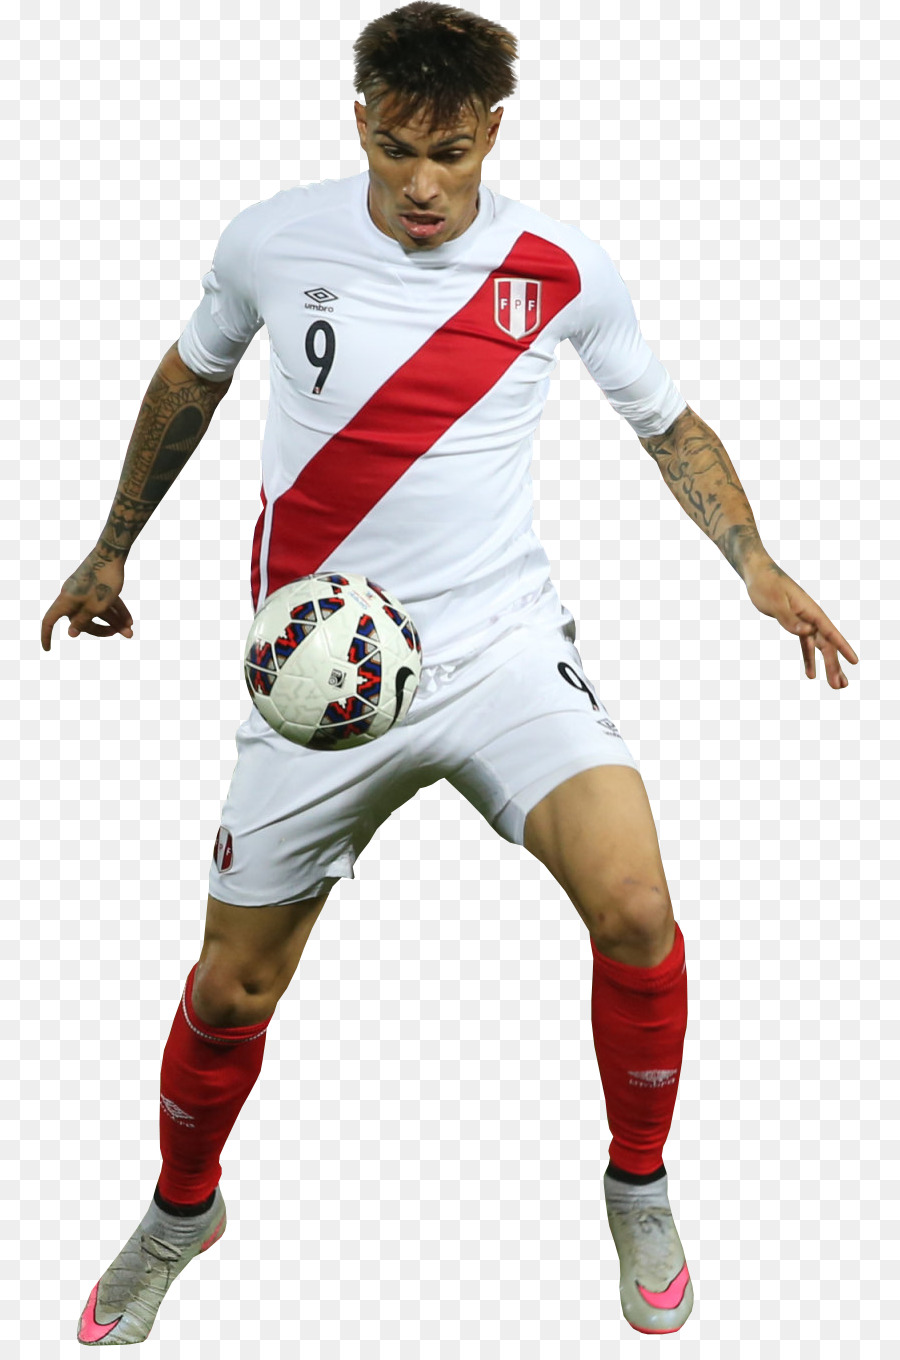 Soccer Ball png download.